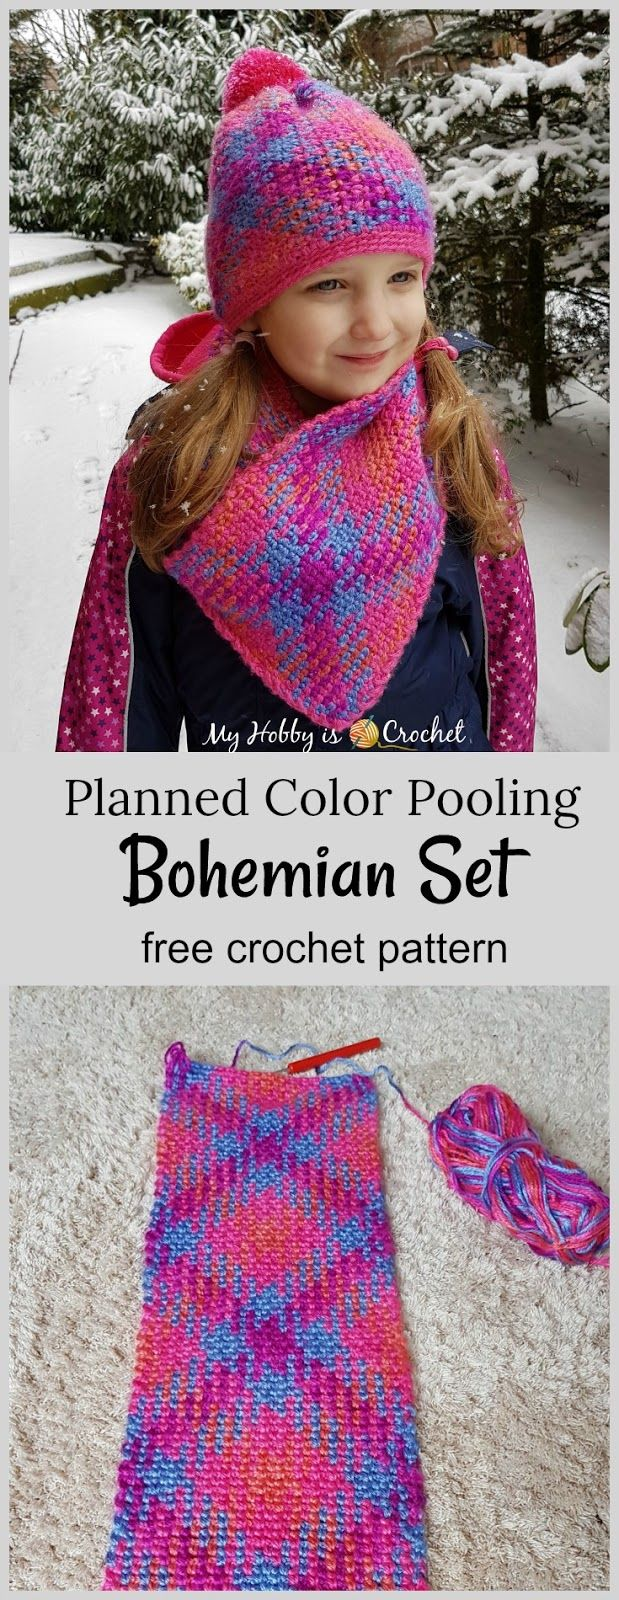 Planned color pooling bohemian hat cowl set free crochet planned color pooling bohemian hat cowl set free crochet patterns bankloansurffo Image collections